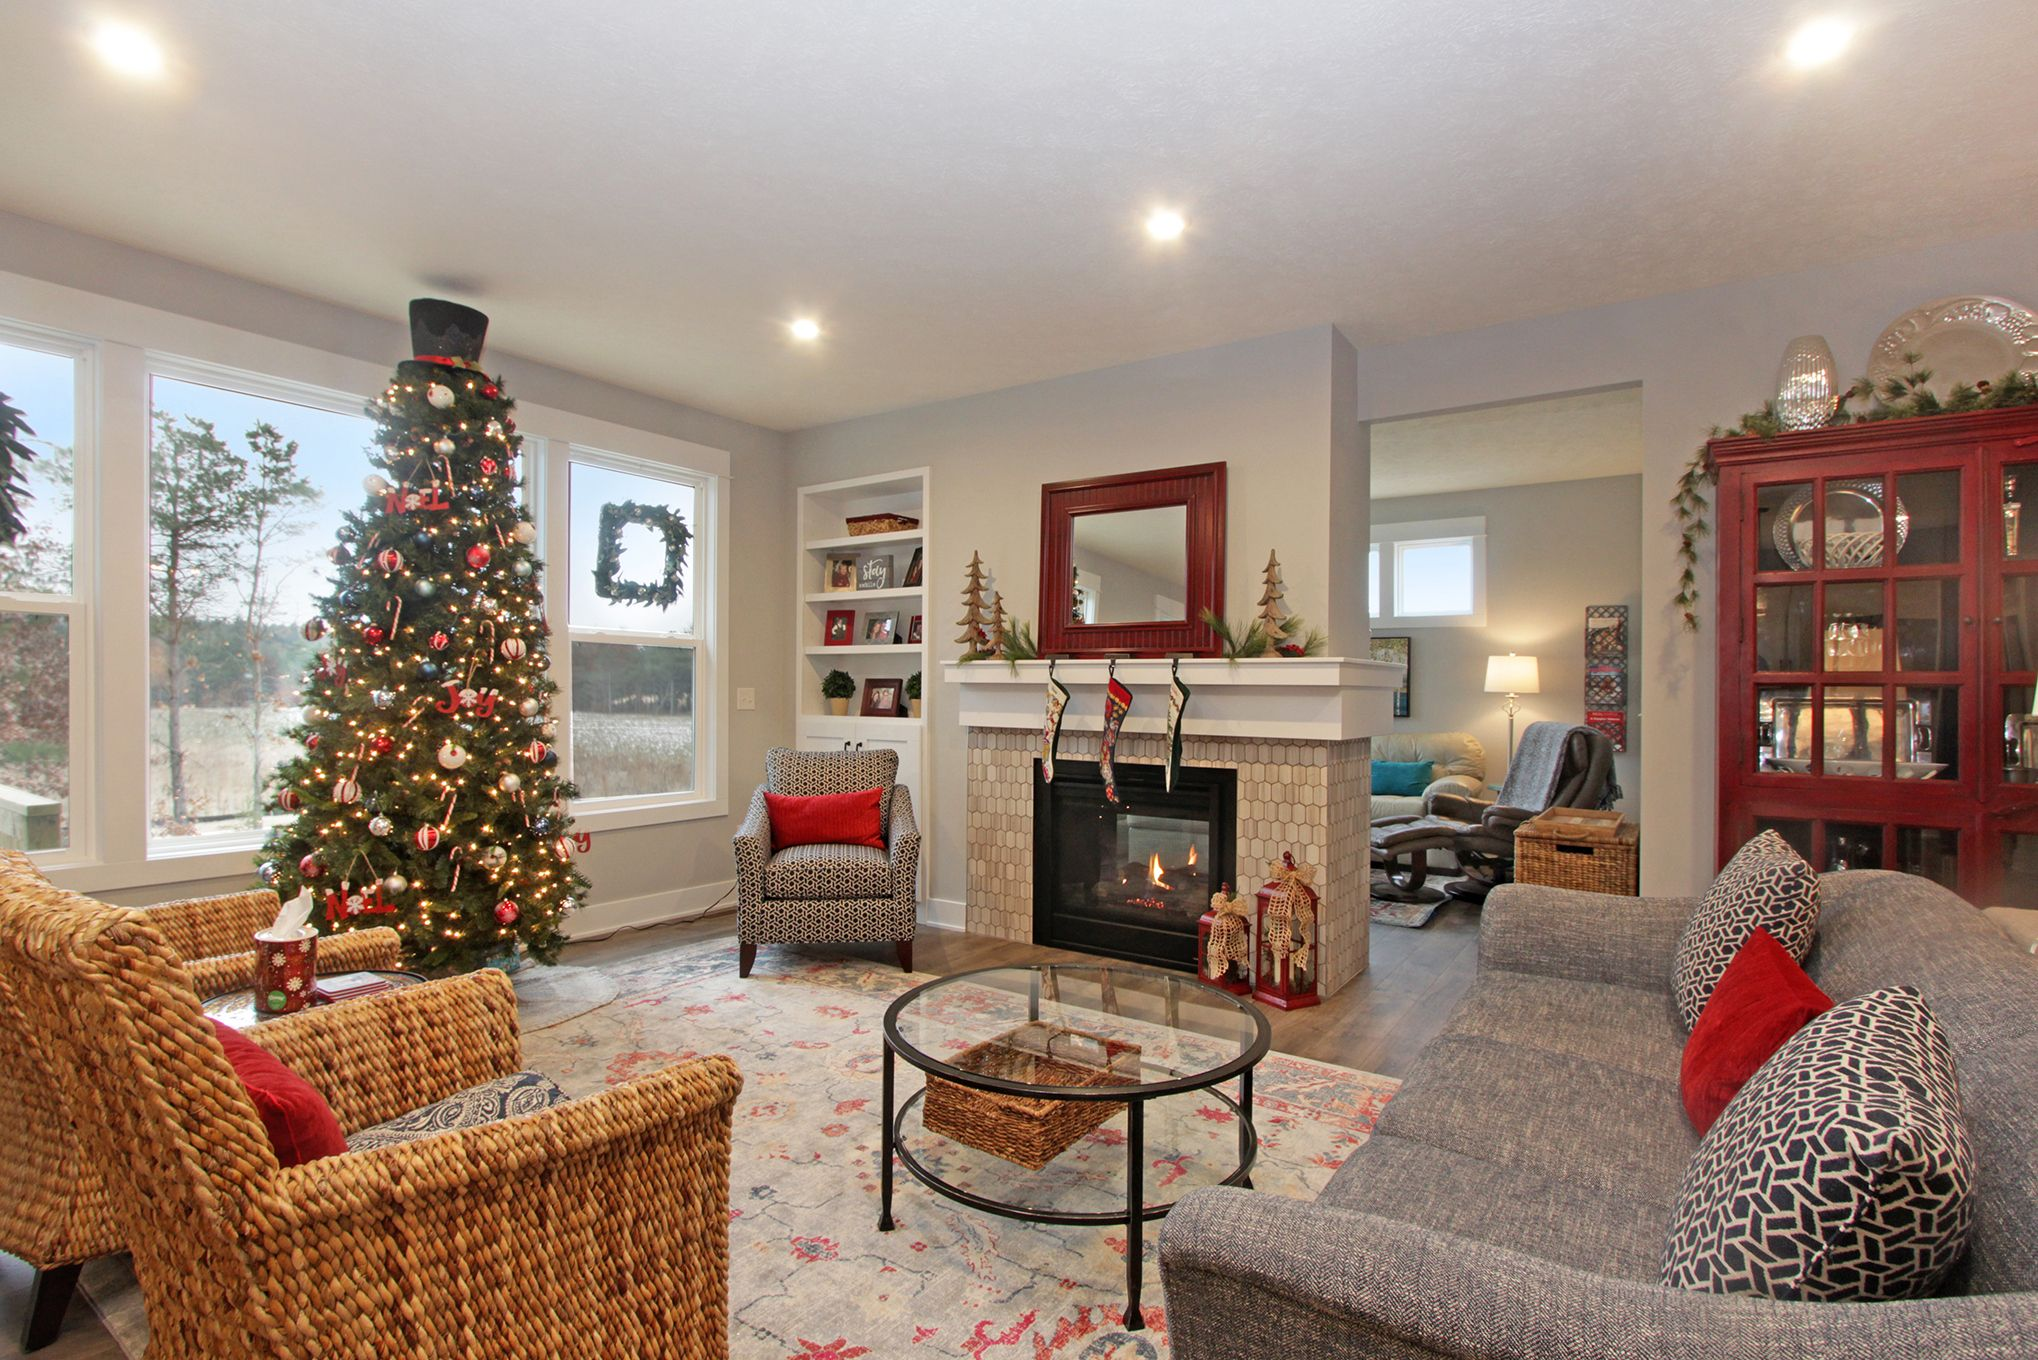 See this beautiful Christmas Maxwell home by Eastbrook Homes #home🏡 #homestyleinspo #homestyledecor #anythingthatsparkles #Landscaping #YardWork #HouseEnvy #InteriorStyling #MichiganHomes #WestMichigan #Holland #homegoals #lovelyinterior #EastbrookHomes #EastbrookExperience